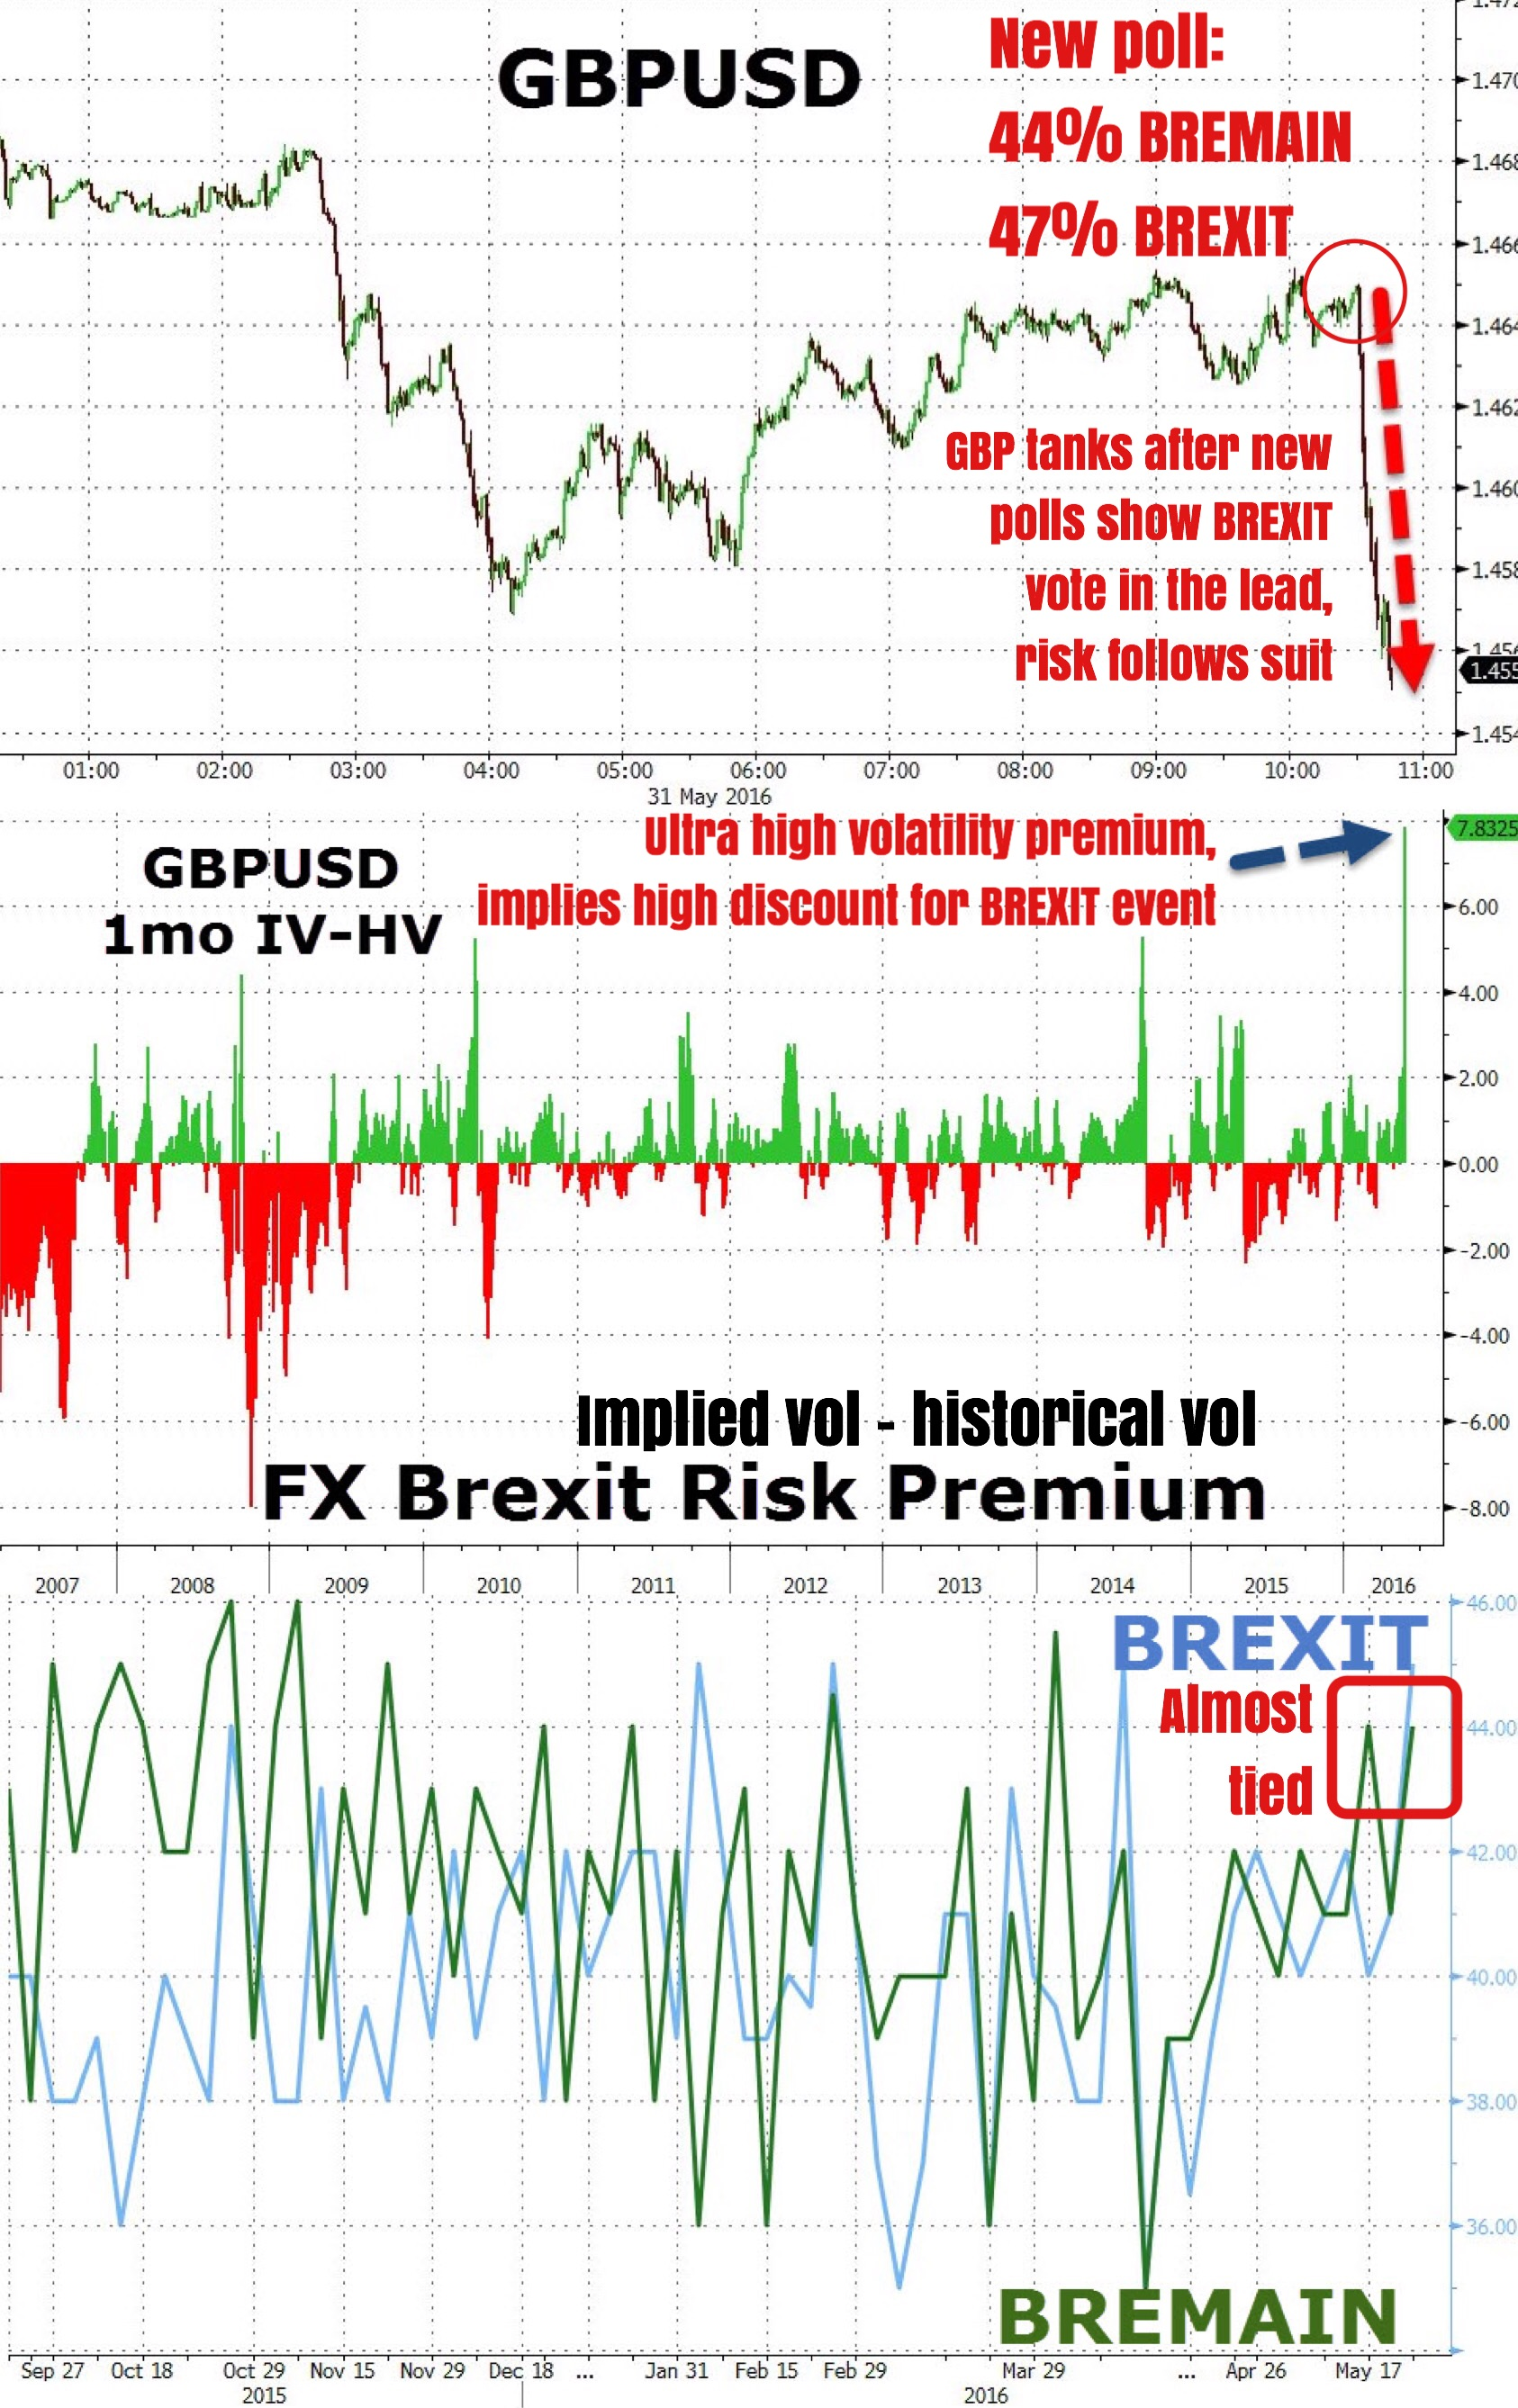 """""""New opinion poll results surfaced in Britain Tuesday showing a 47% vote for leaving the EU (Brexit), and a 44% vote for remaining in the EU (Bremain). The news sent GBP crashing 130 pips against the USD and shockwaves across risk markets will global indices all down on the day and for the week. While such poll results are questionable, the consensus is that the Brexit vote is quickly catching up to the conservative.    Regardless of results, the UK referendum is surely one of (if not the most) the nuggets event risks in June and markets will likely continue to trade wildly on every ebb on this event.""""    Business Of Finance on Facebook, 1 June 2016"""